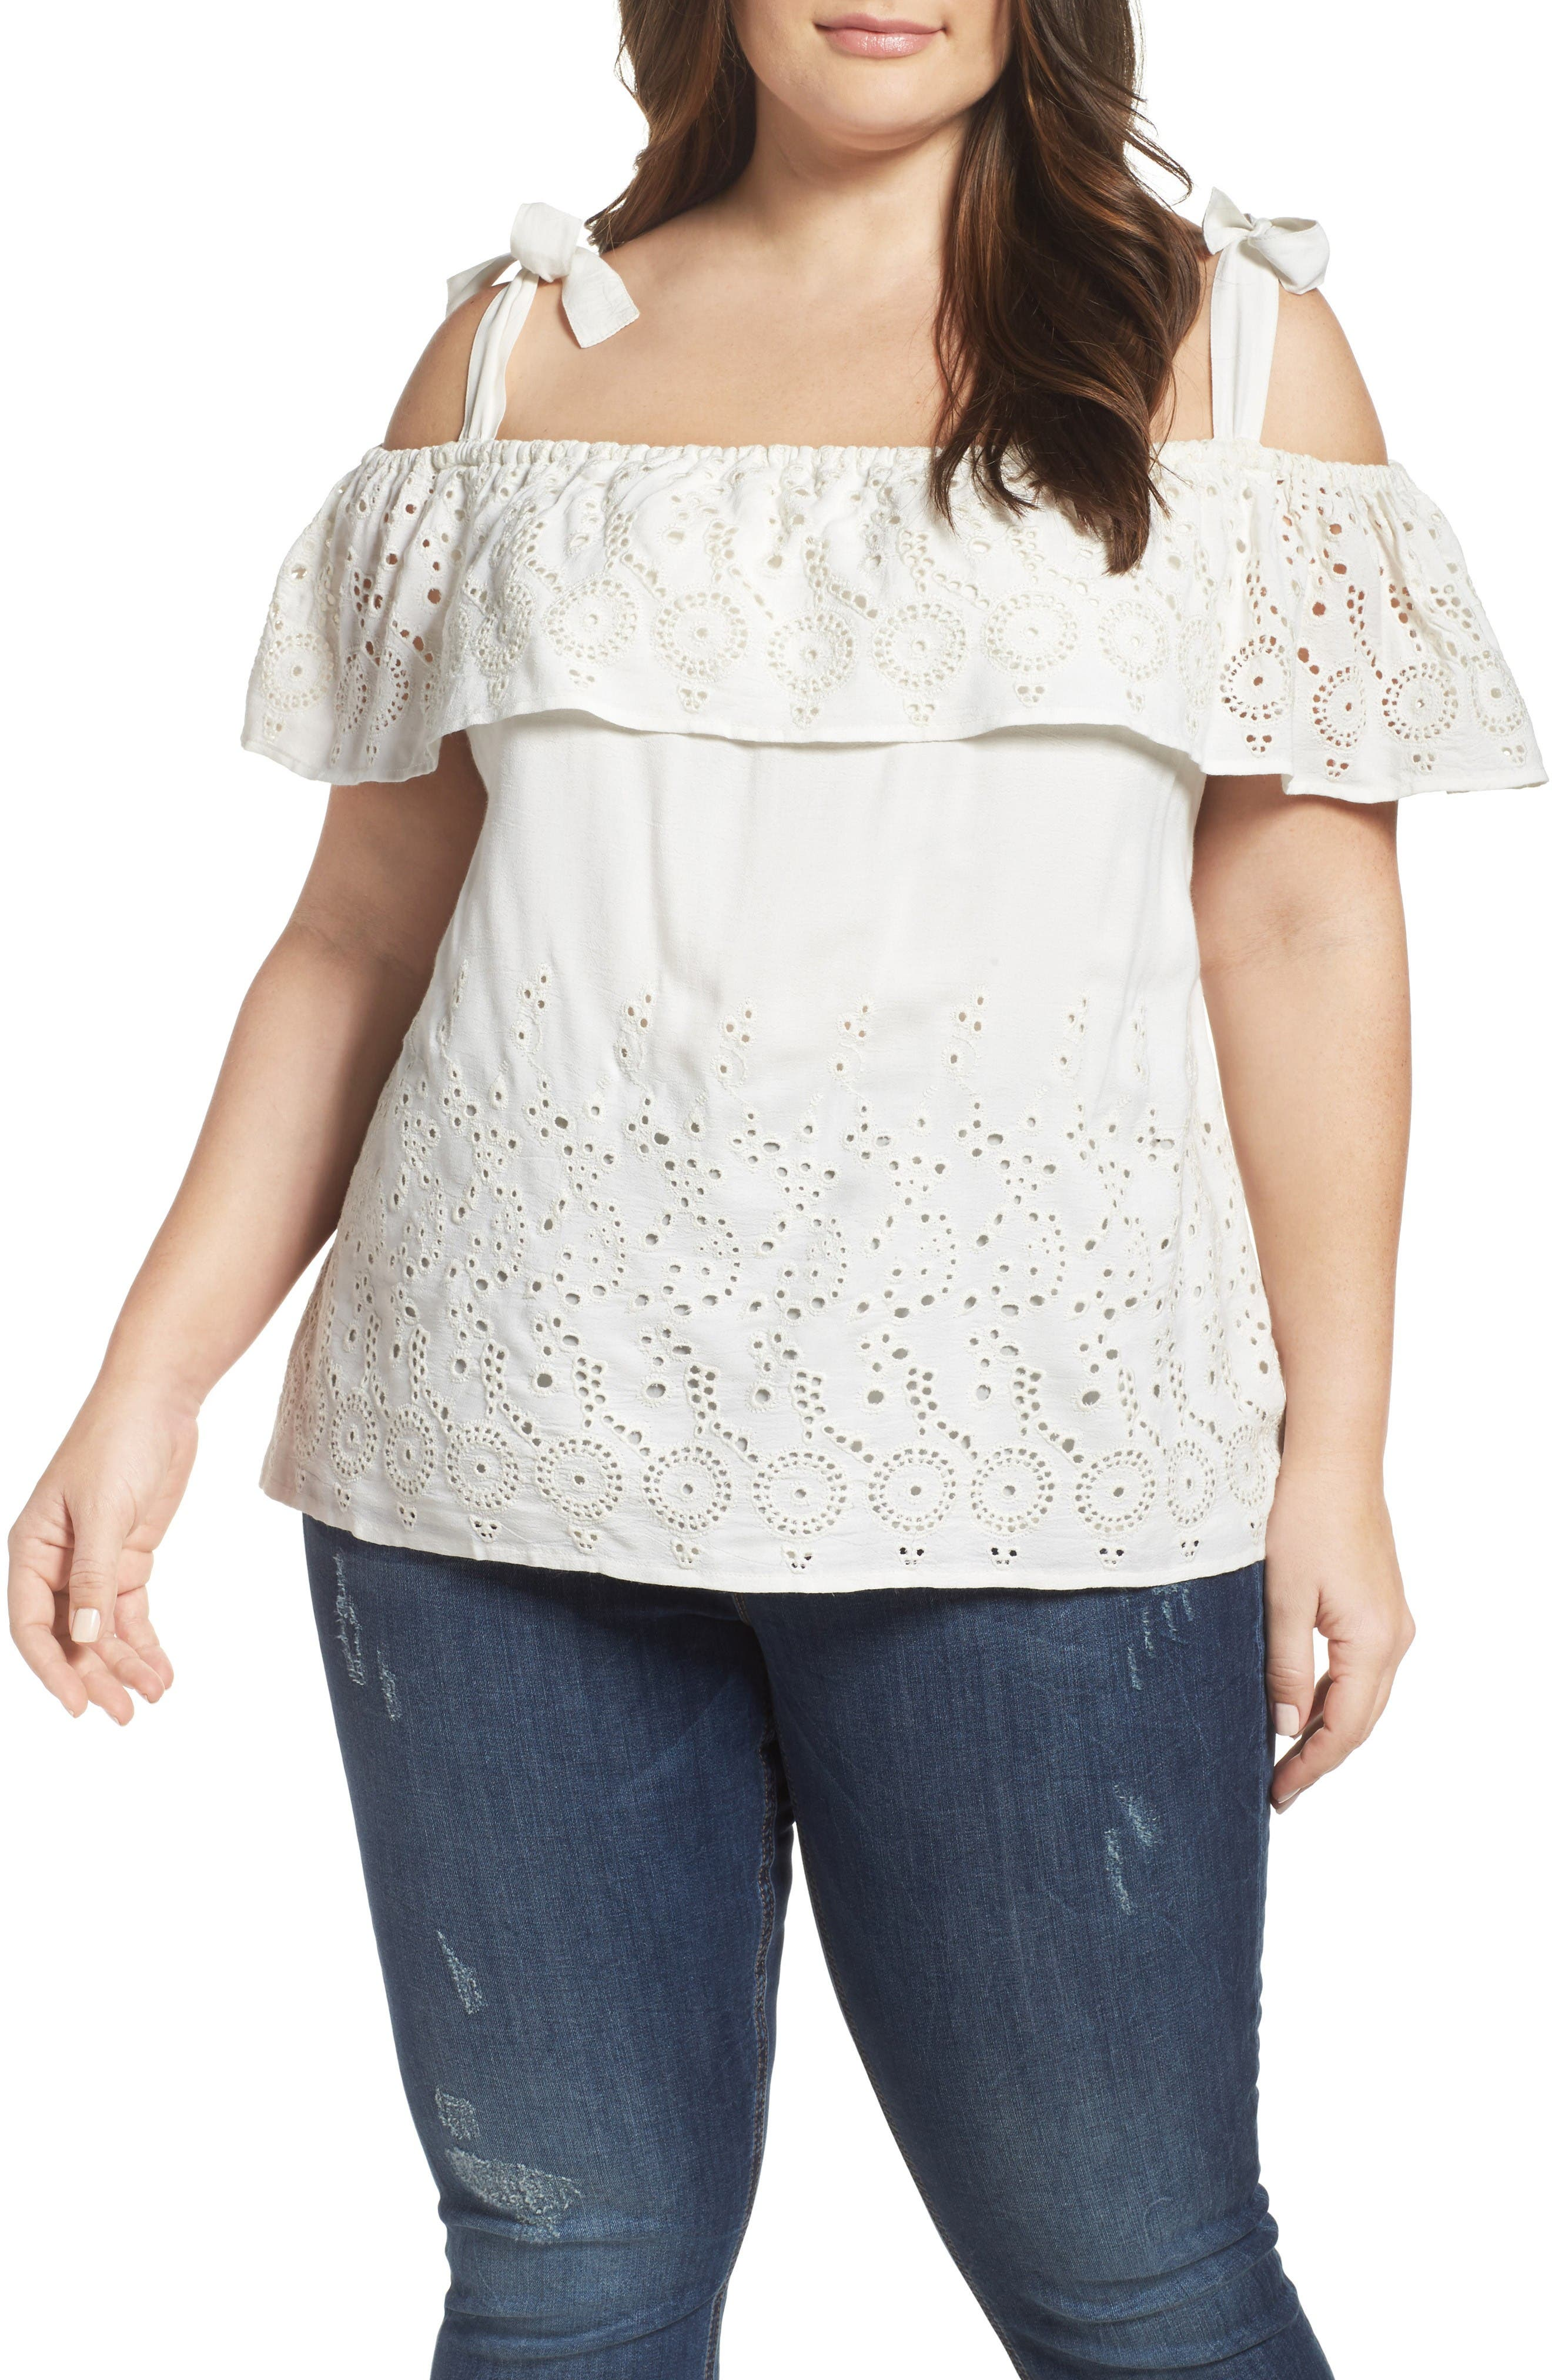 Alternate Image 1 Selected - Lucky Brand Eyelet Embroidered Off the Shoulder Top (Plus Size)